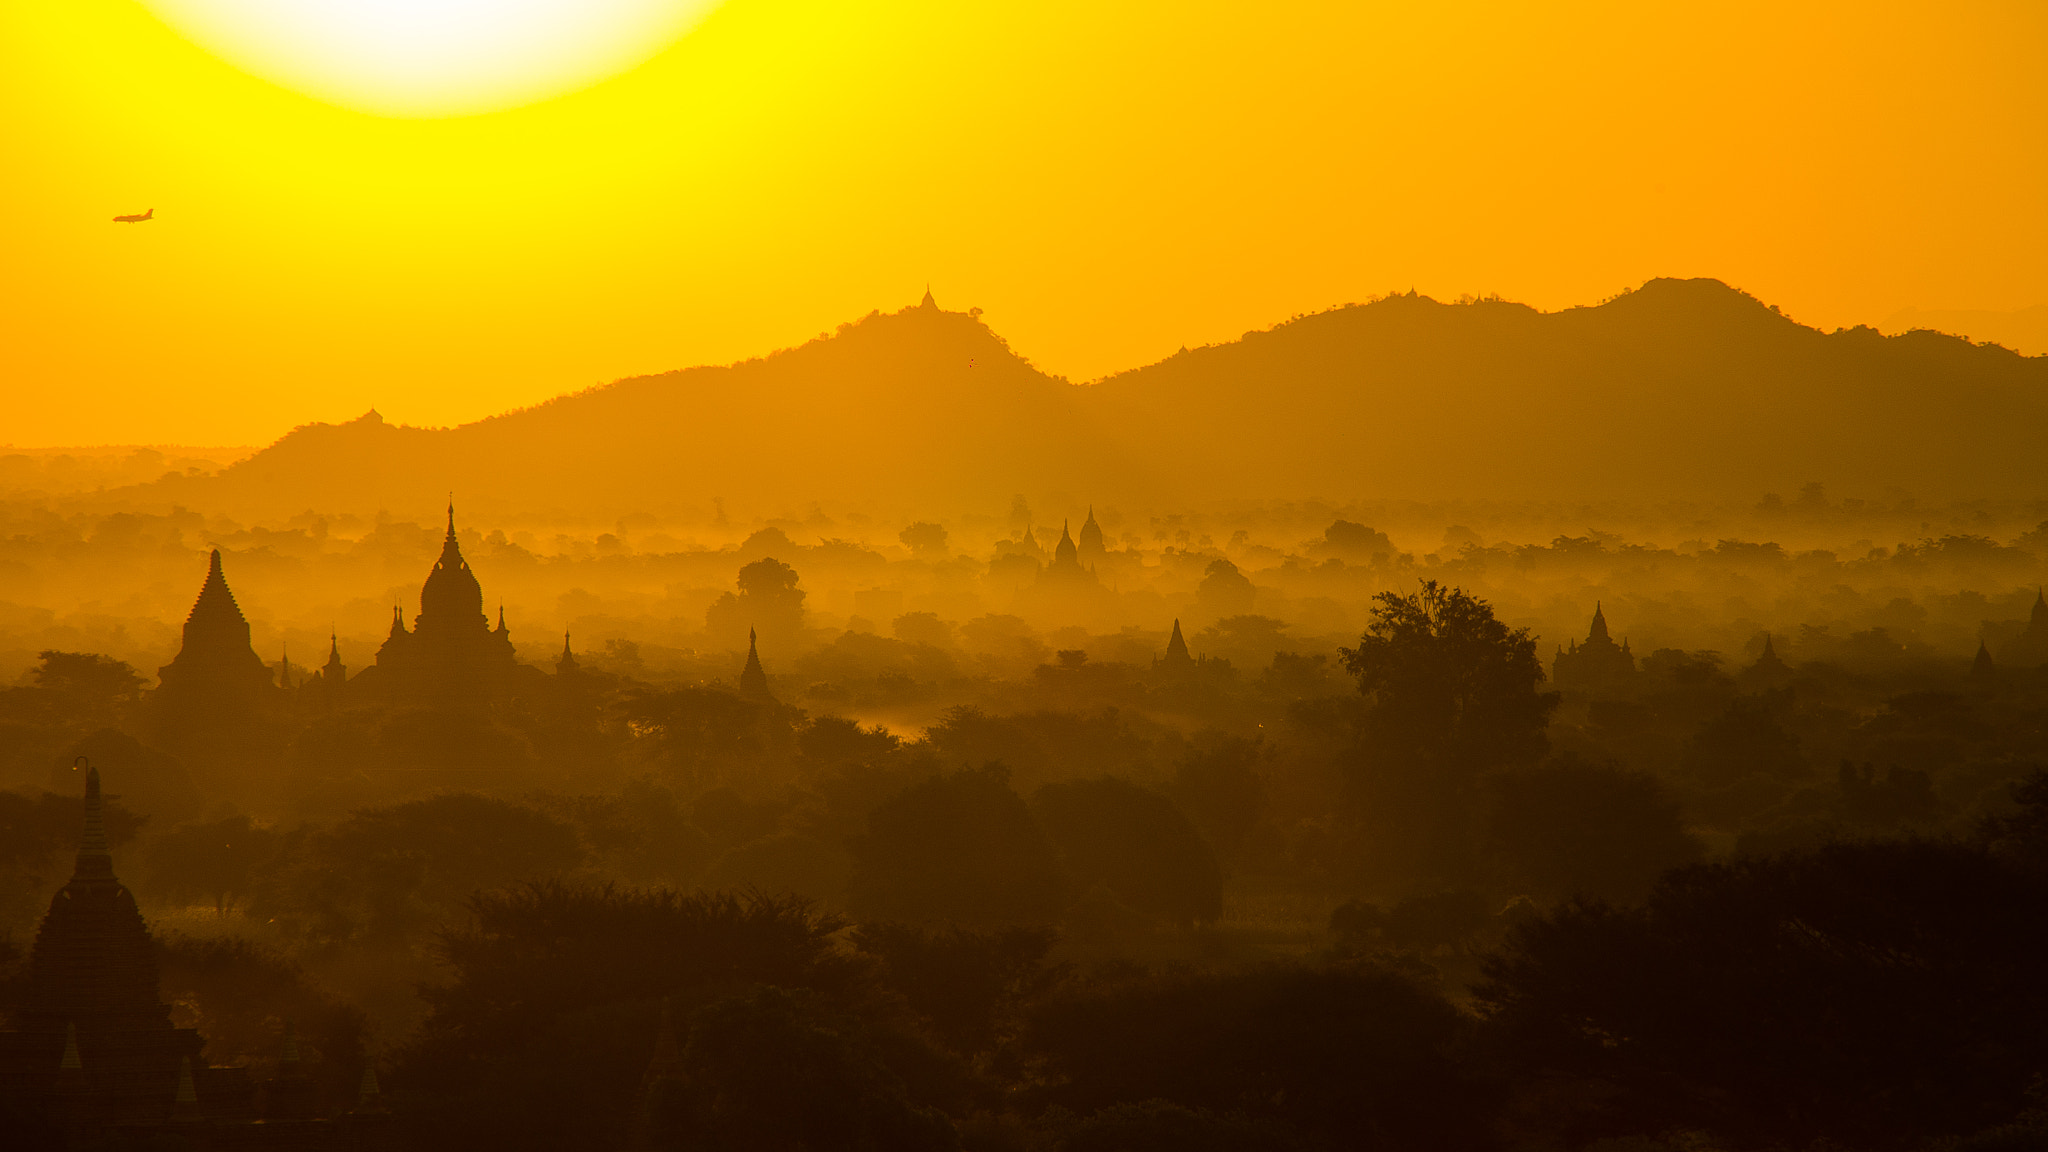 Photograph Bagan, Myanmar (Burma) by Raf Horemans on 500px